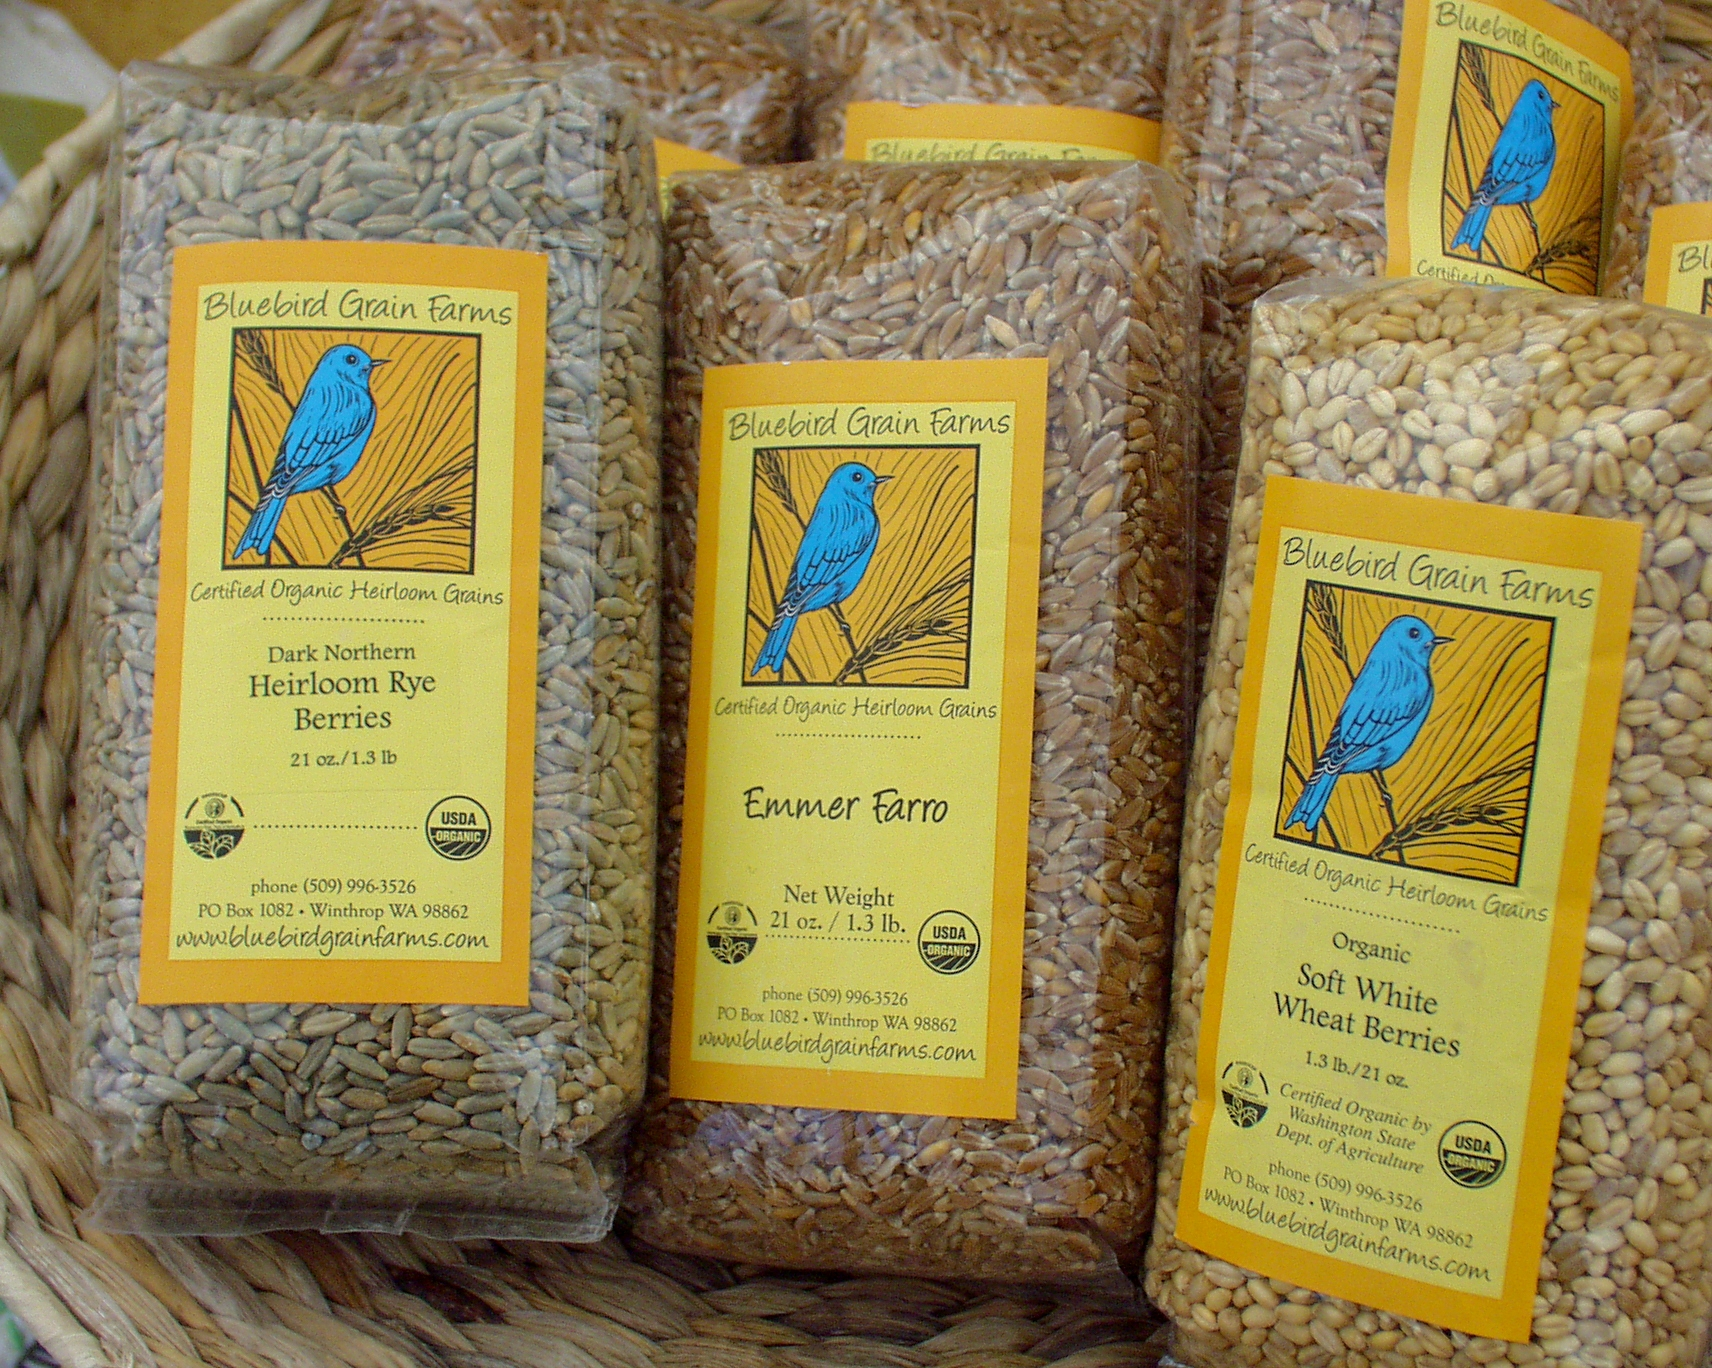 Whole grain emmer, rye and wheat from Bluebird Grain Farms. Photo copyright 2009 by Zachary D. Lyons.